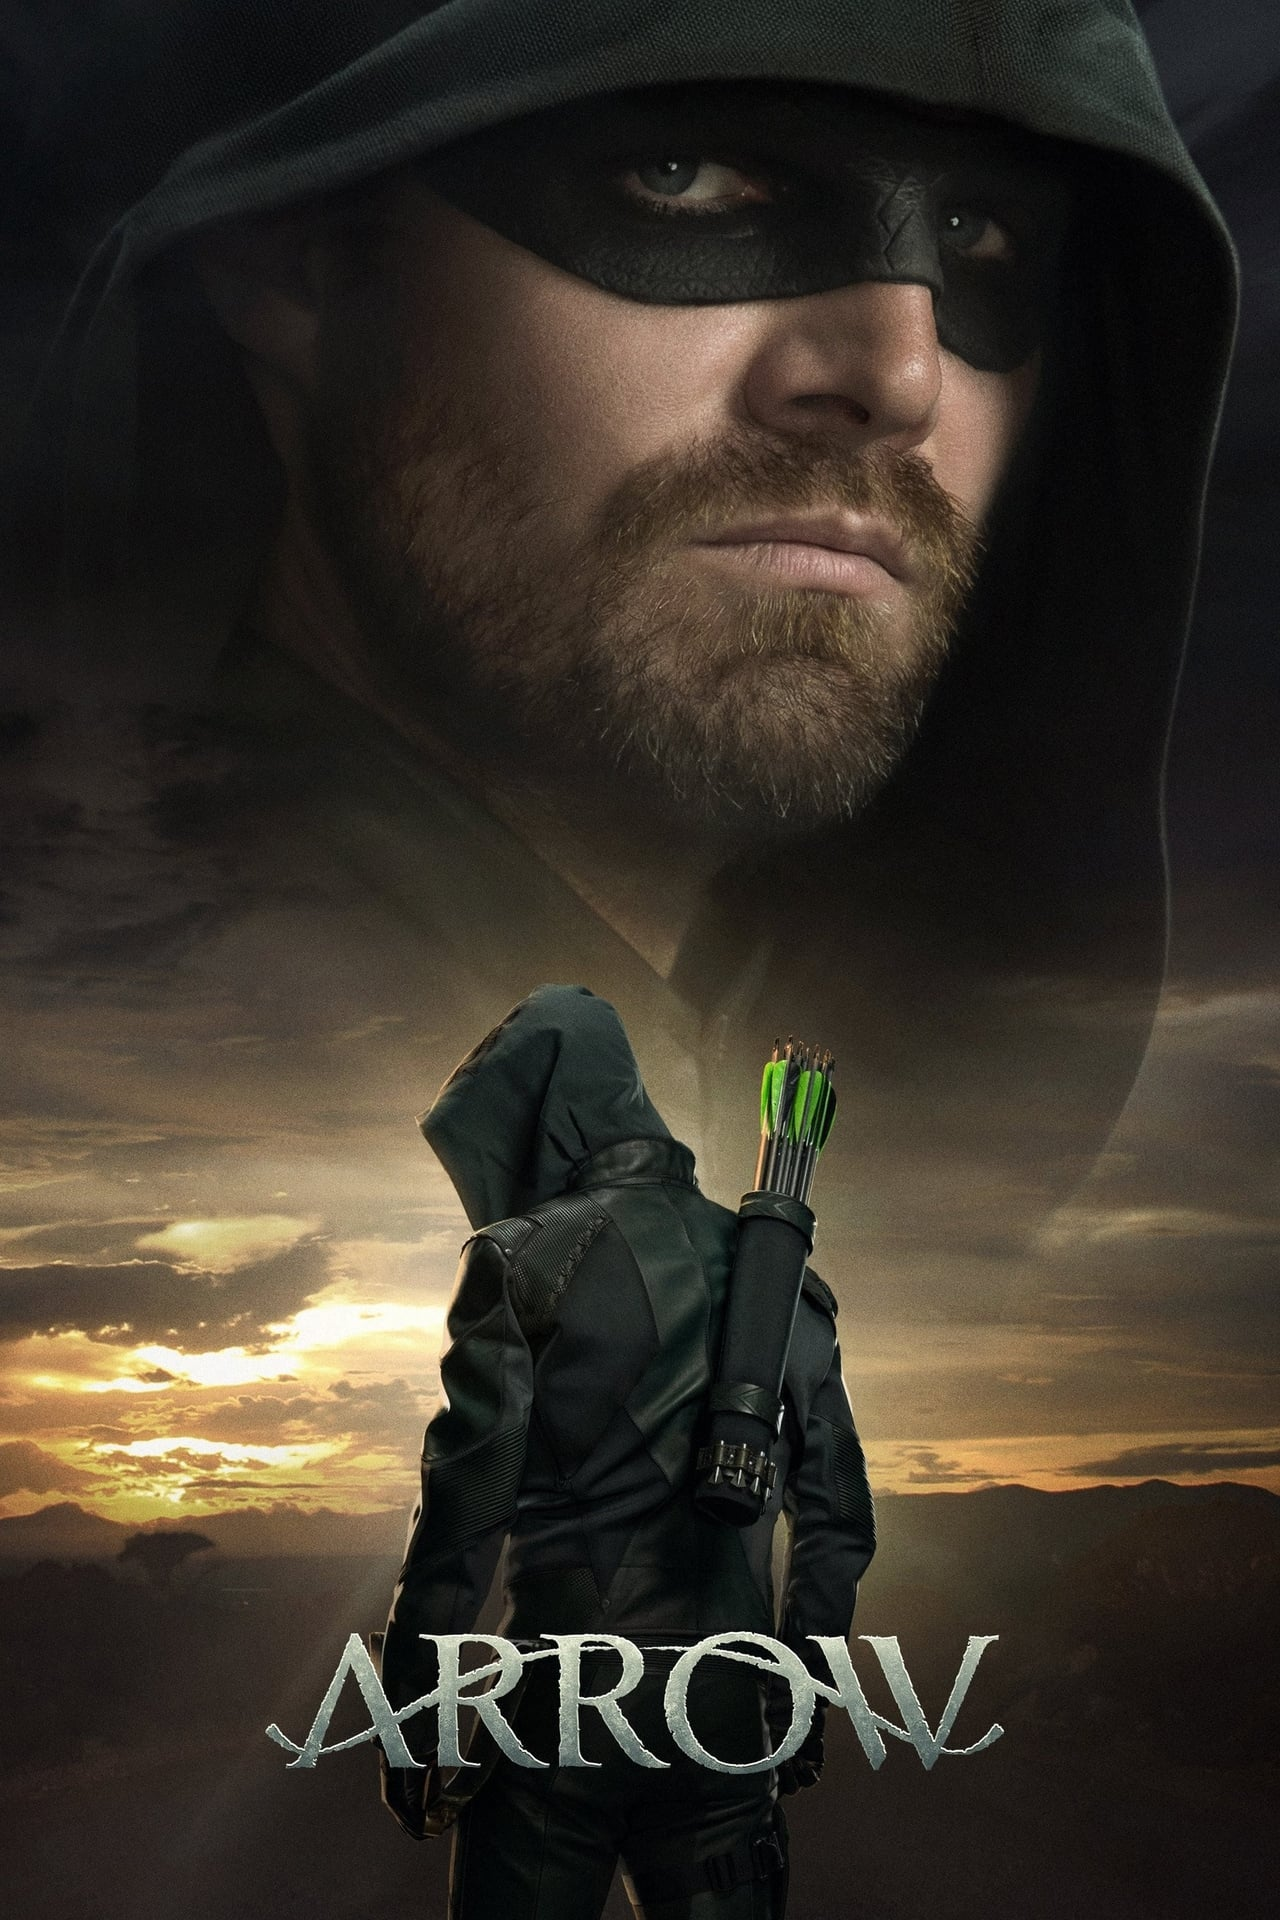 Arrow - Season 6 Episode 21 : Caso Nº 11-19-41-73